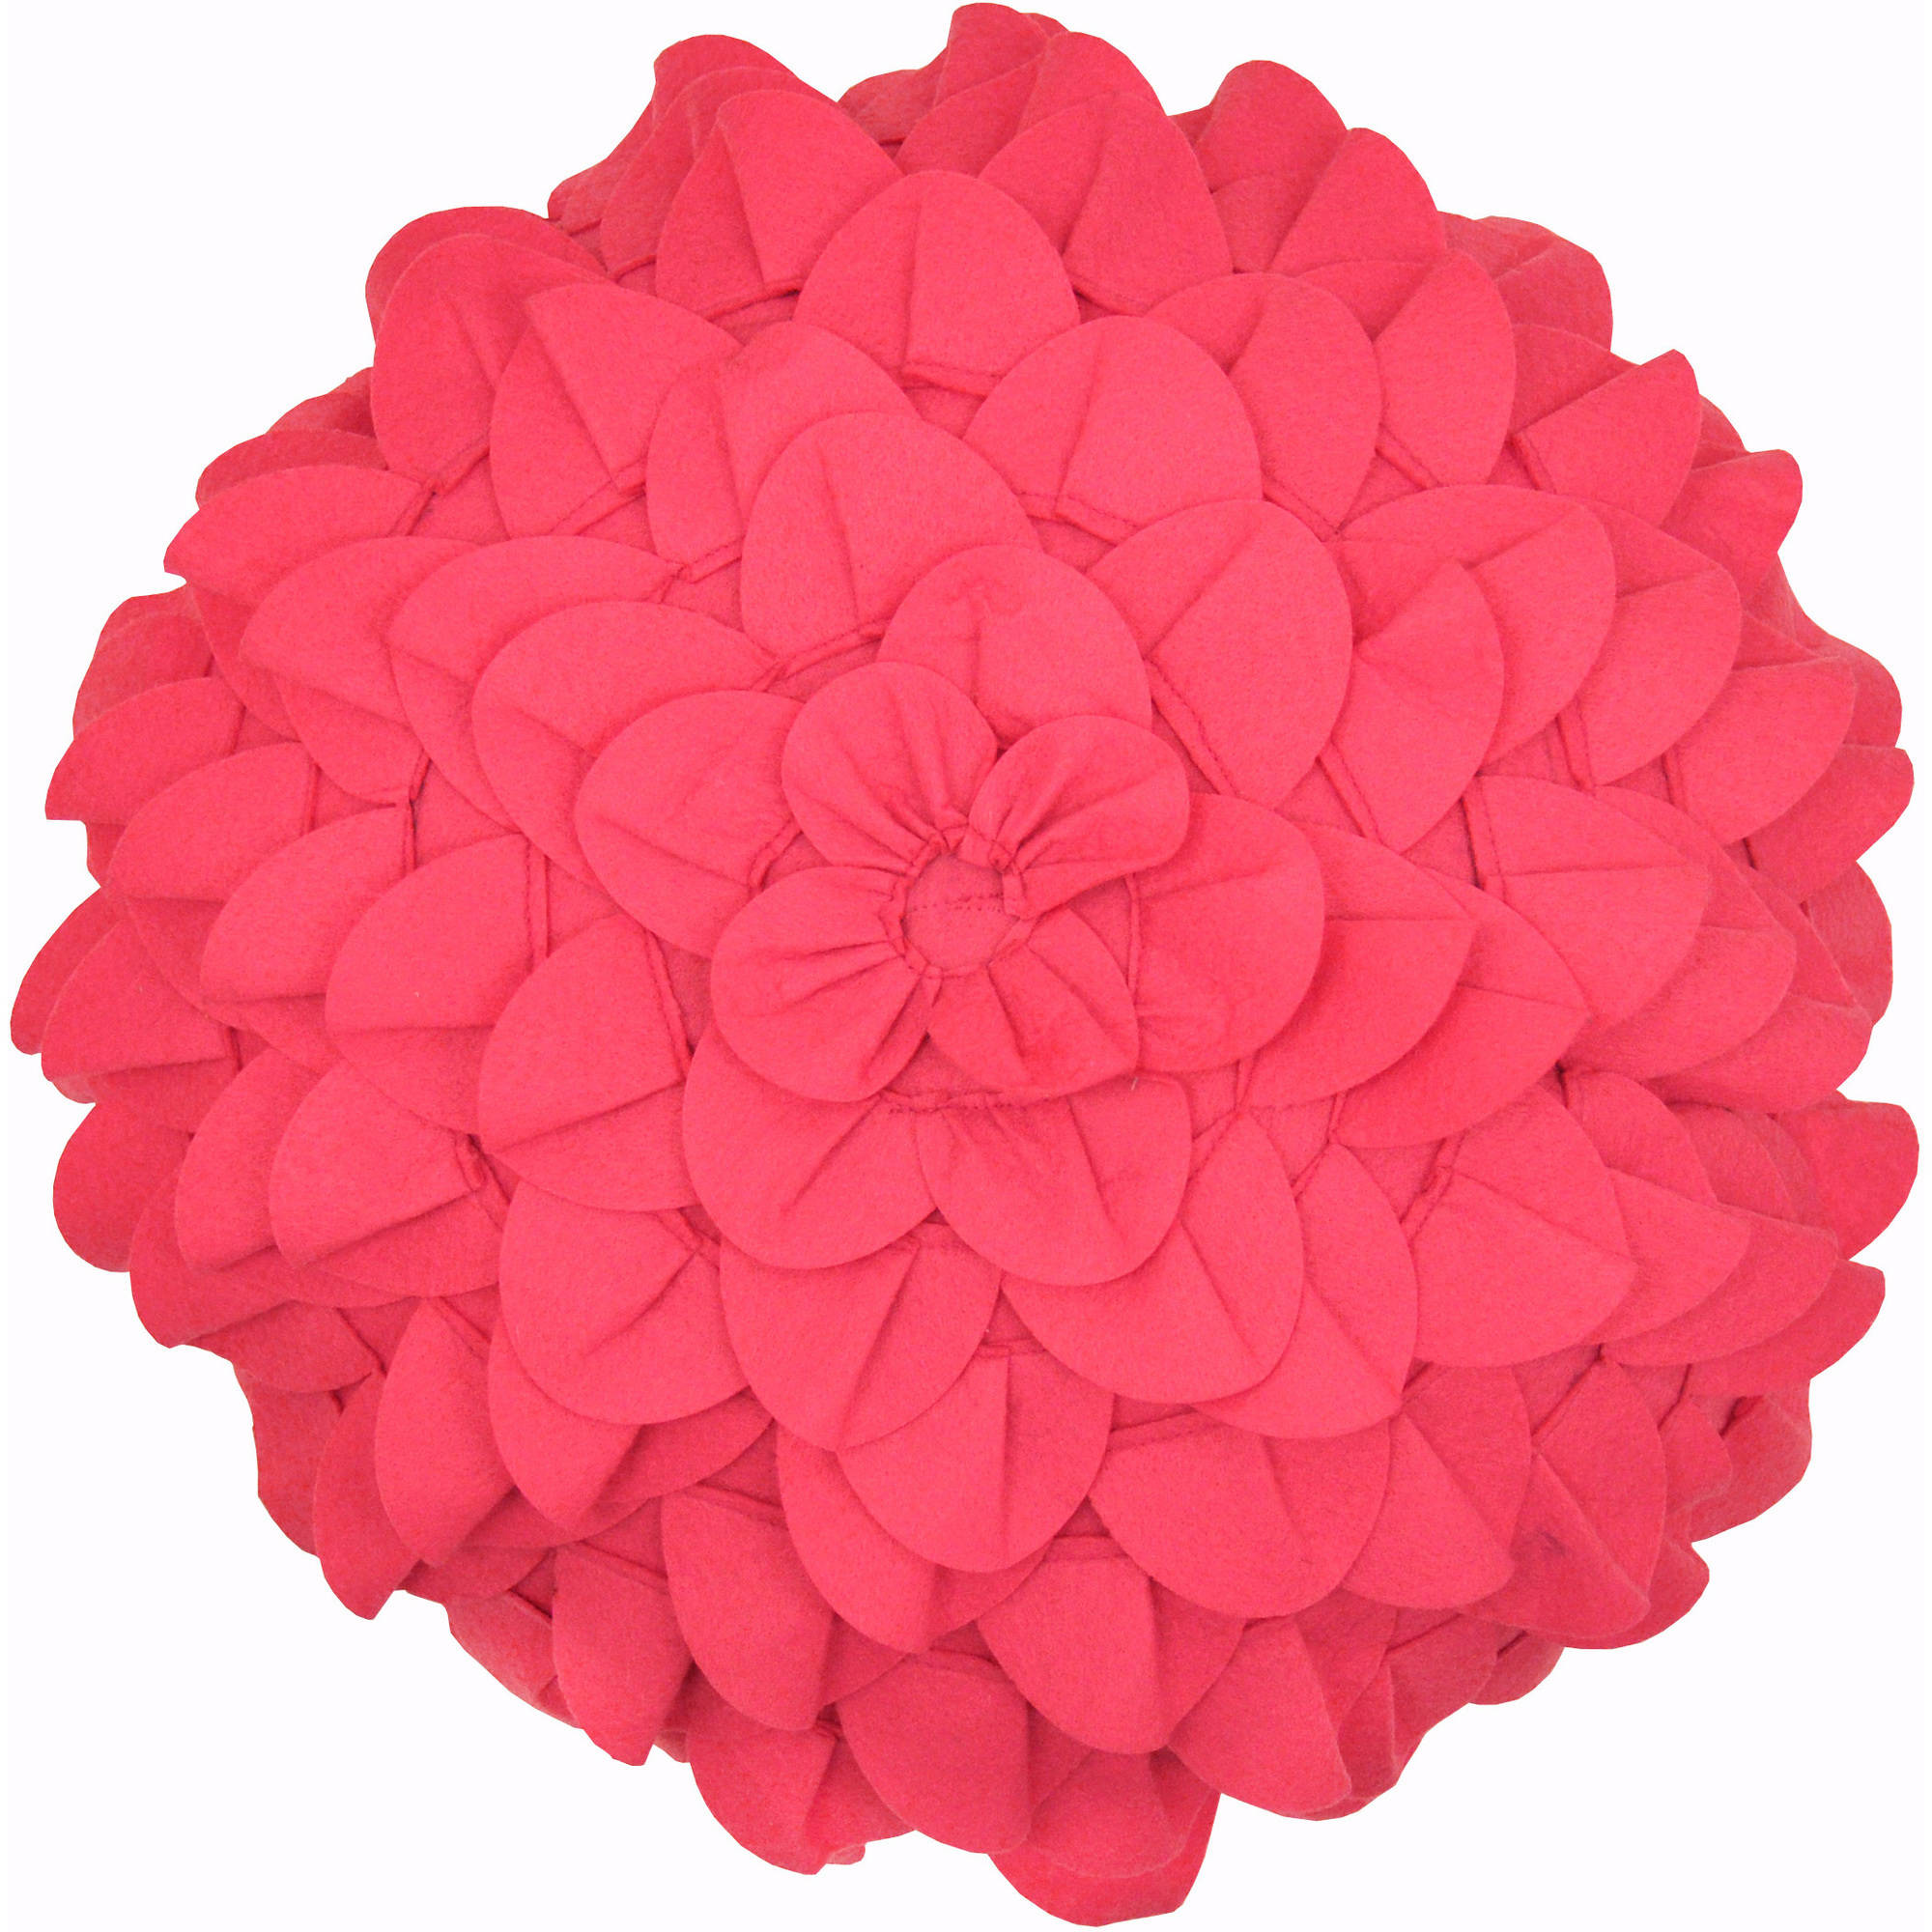 Formula Rose Die Cut Decorative Pillow, Pink